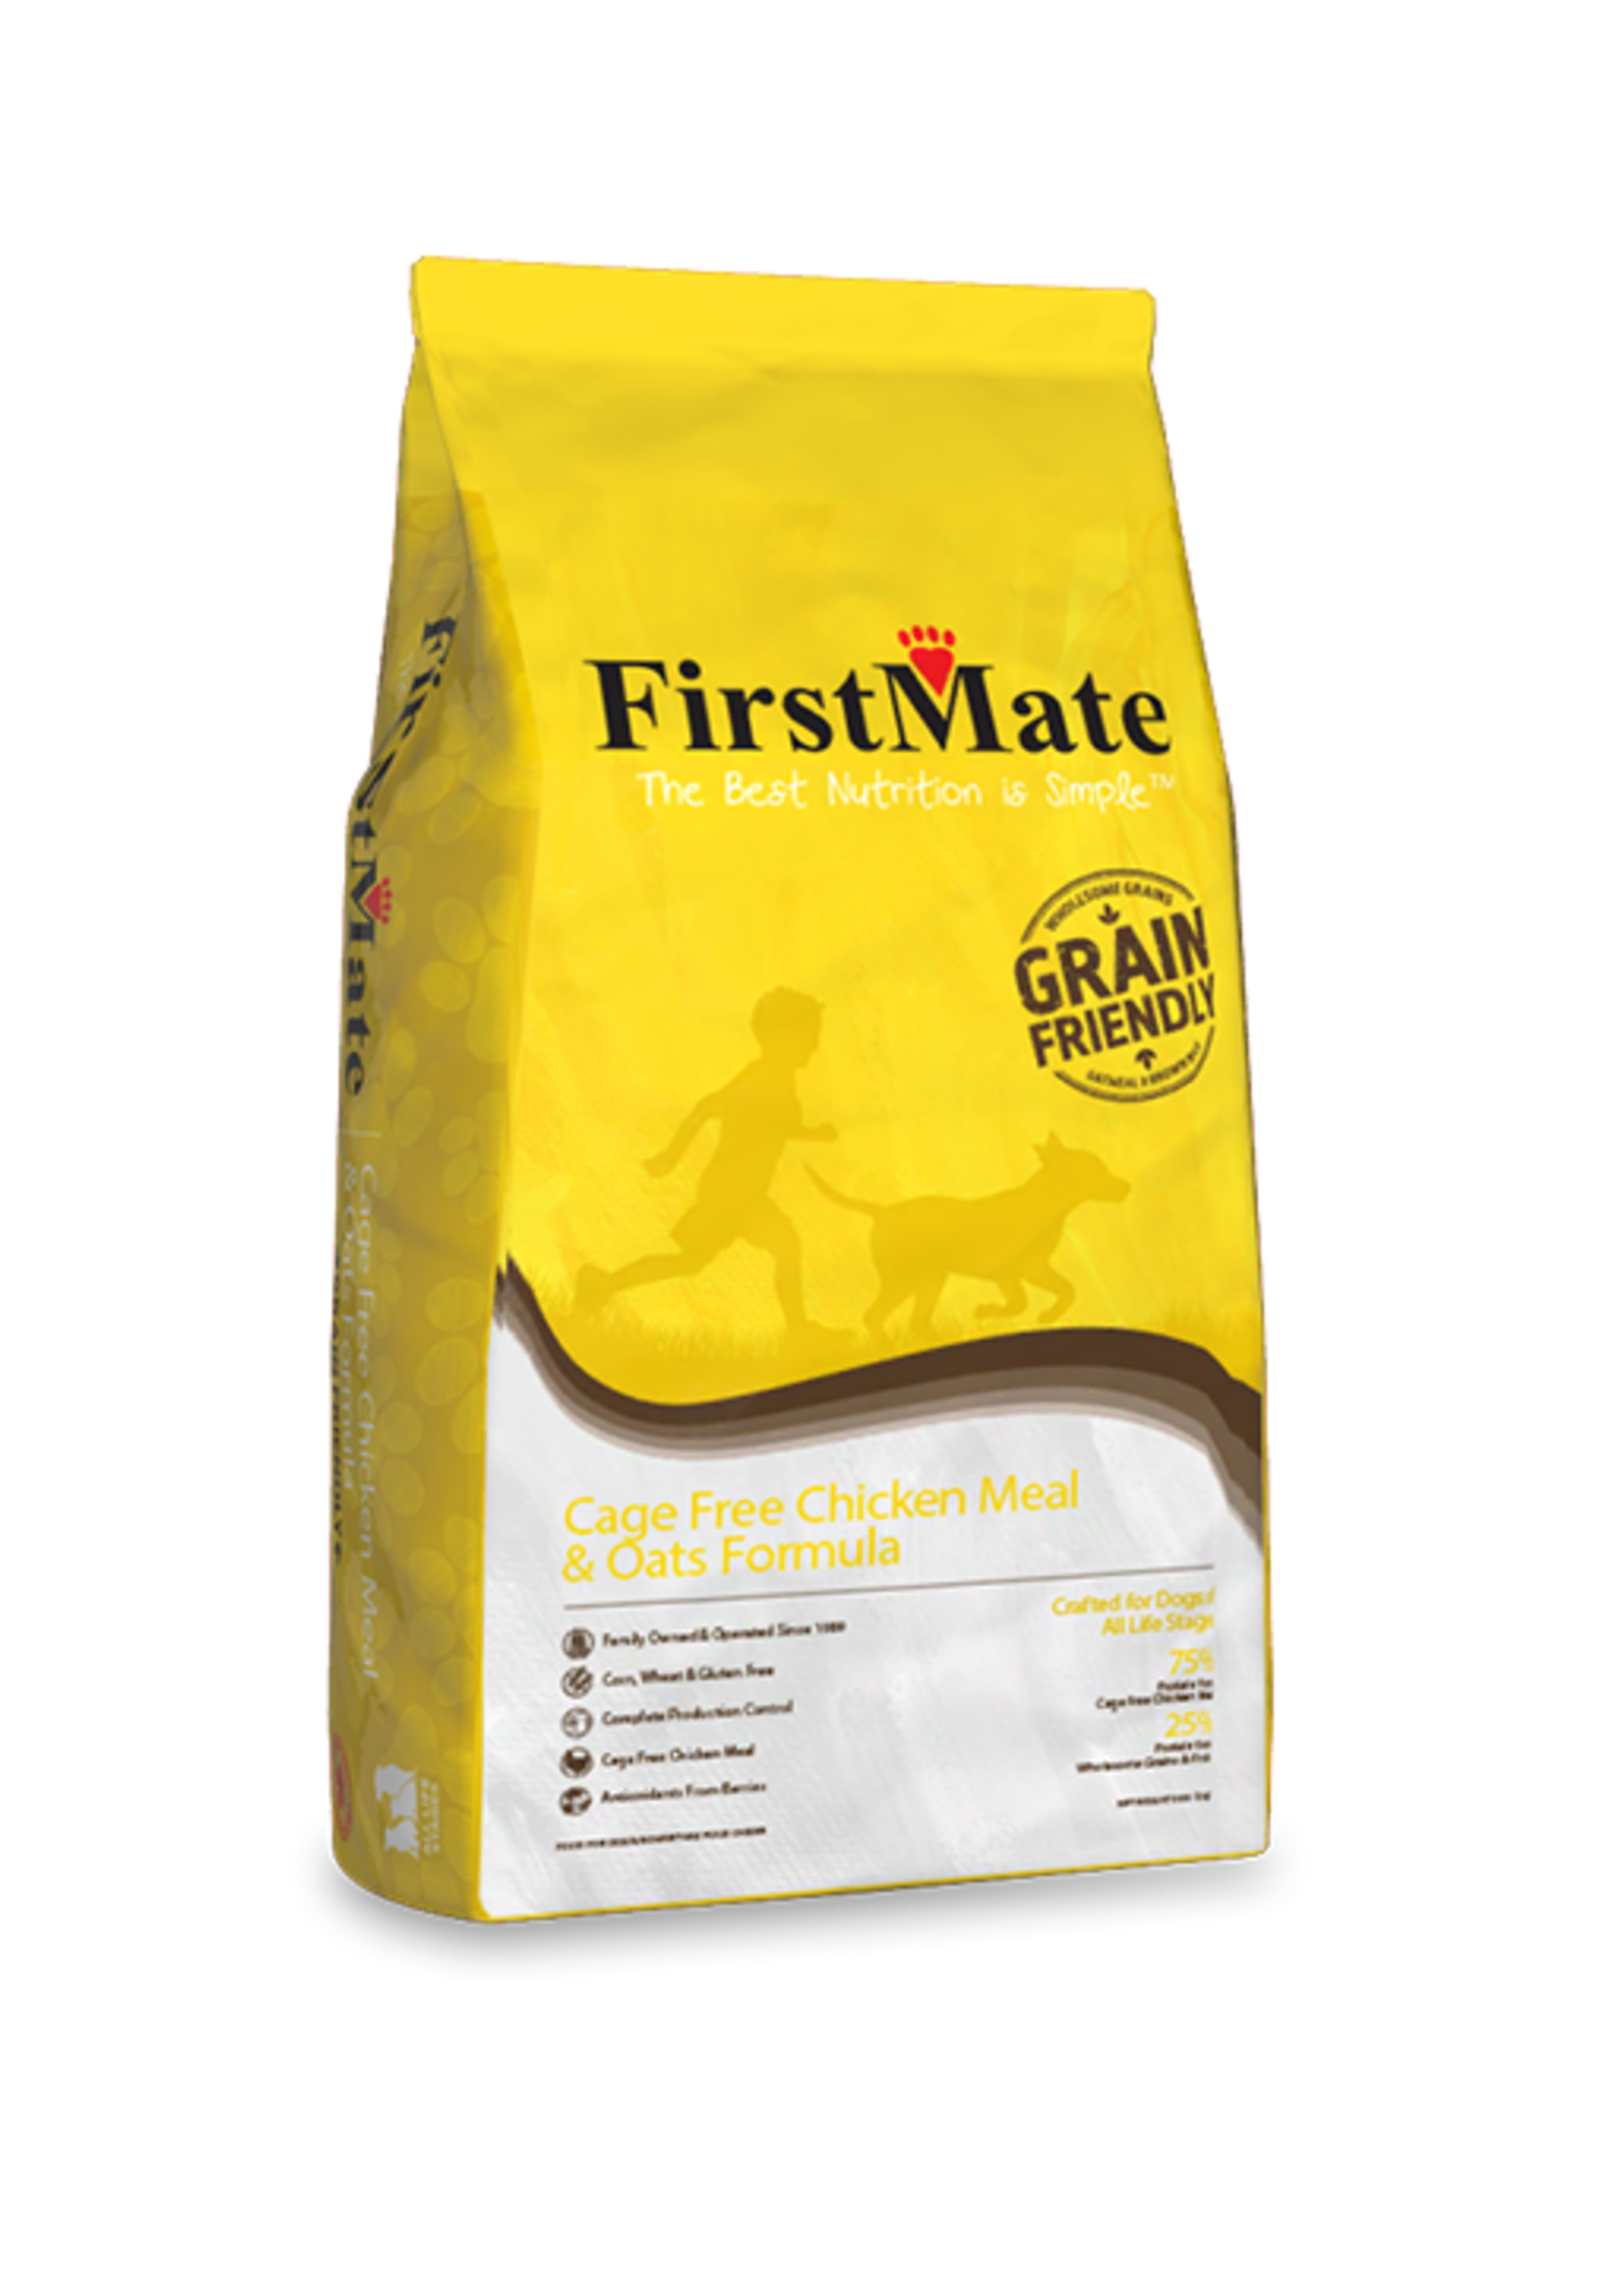 FirstMate FirstMate Cage Free Chicken Meal & Oats Formula 25lbs